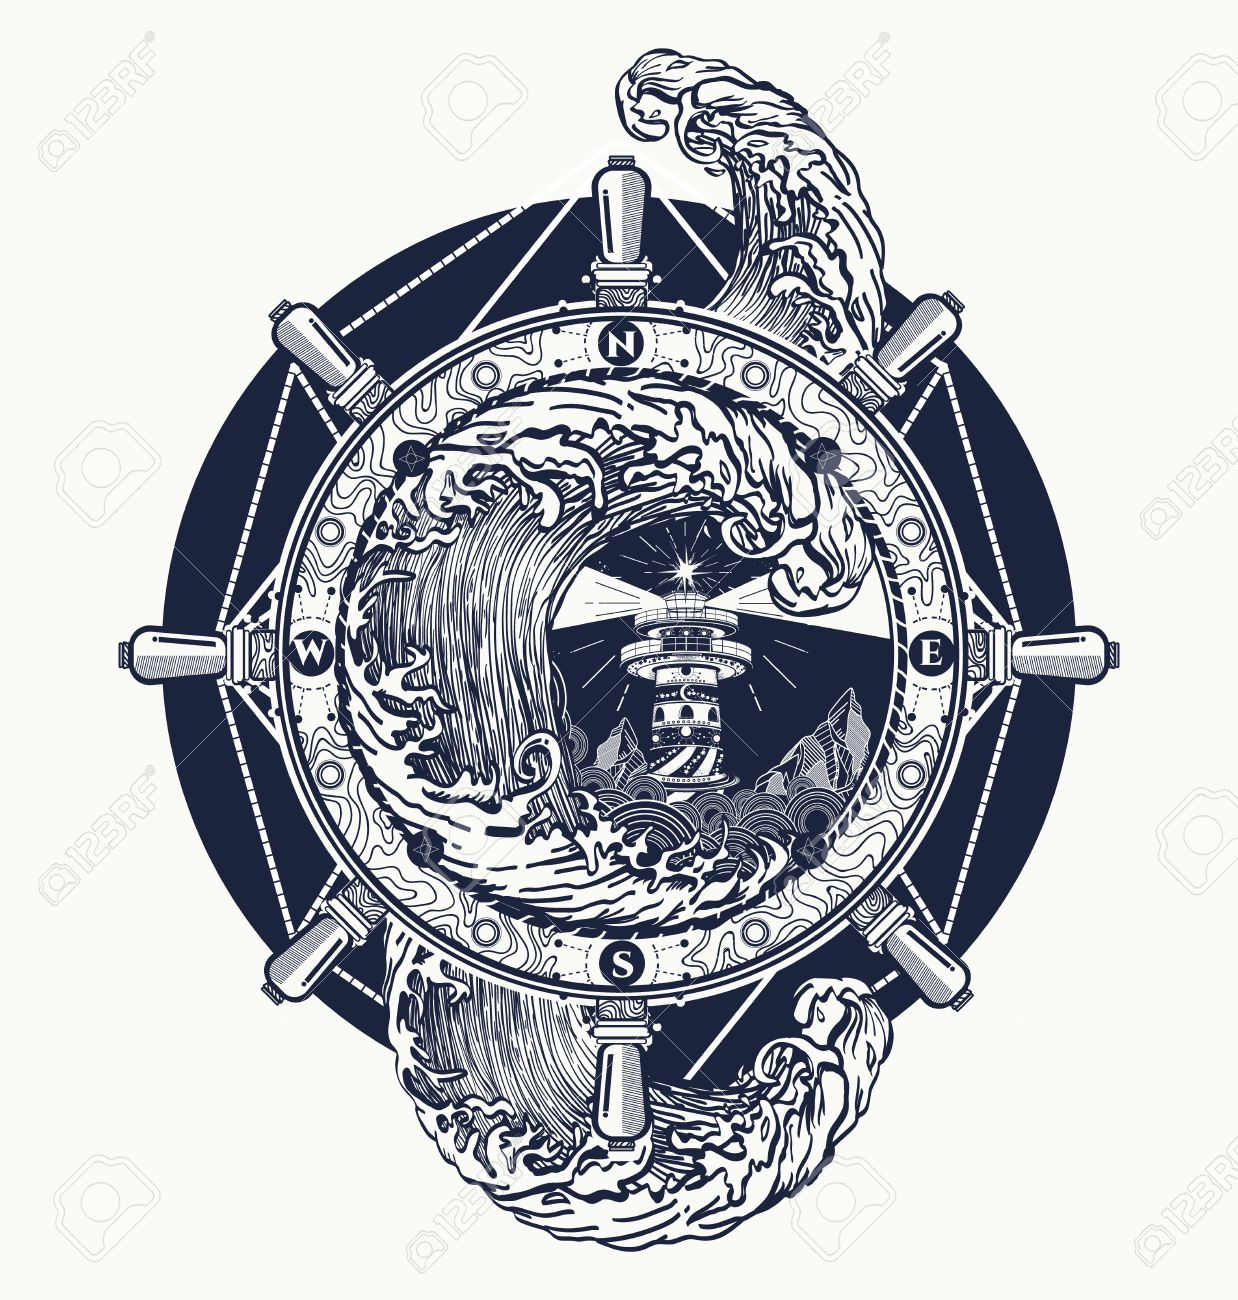 Steering wheel ship tatto art, sea tattoo and t-shirt design. Lighthouse storm. Decorative lighthouse. Searchlight tower for maritime navigational guidance tattoo. Ocean wave storm art - 66780174